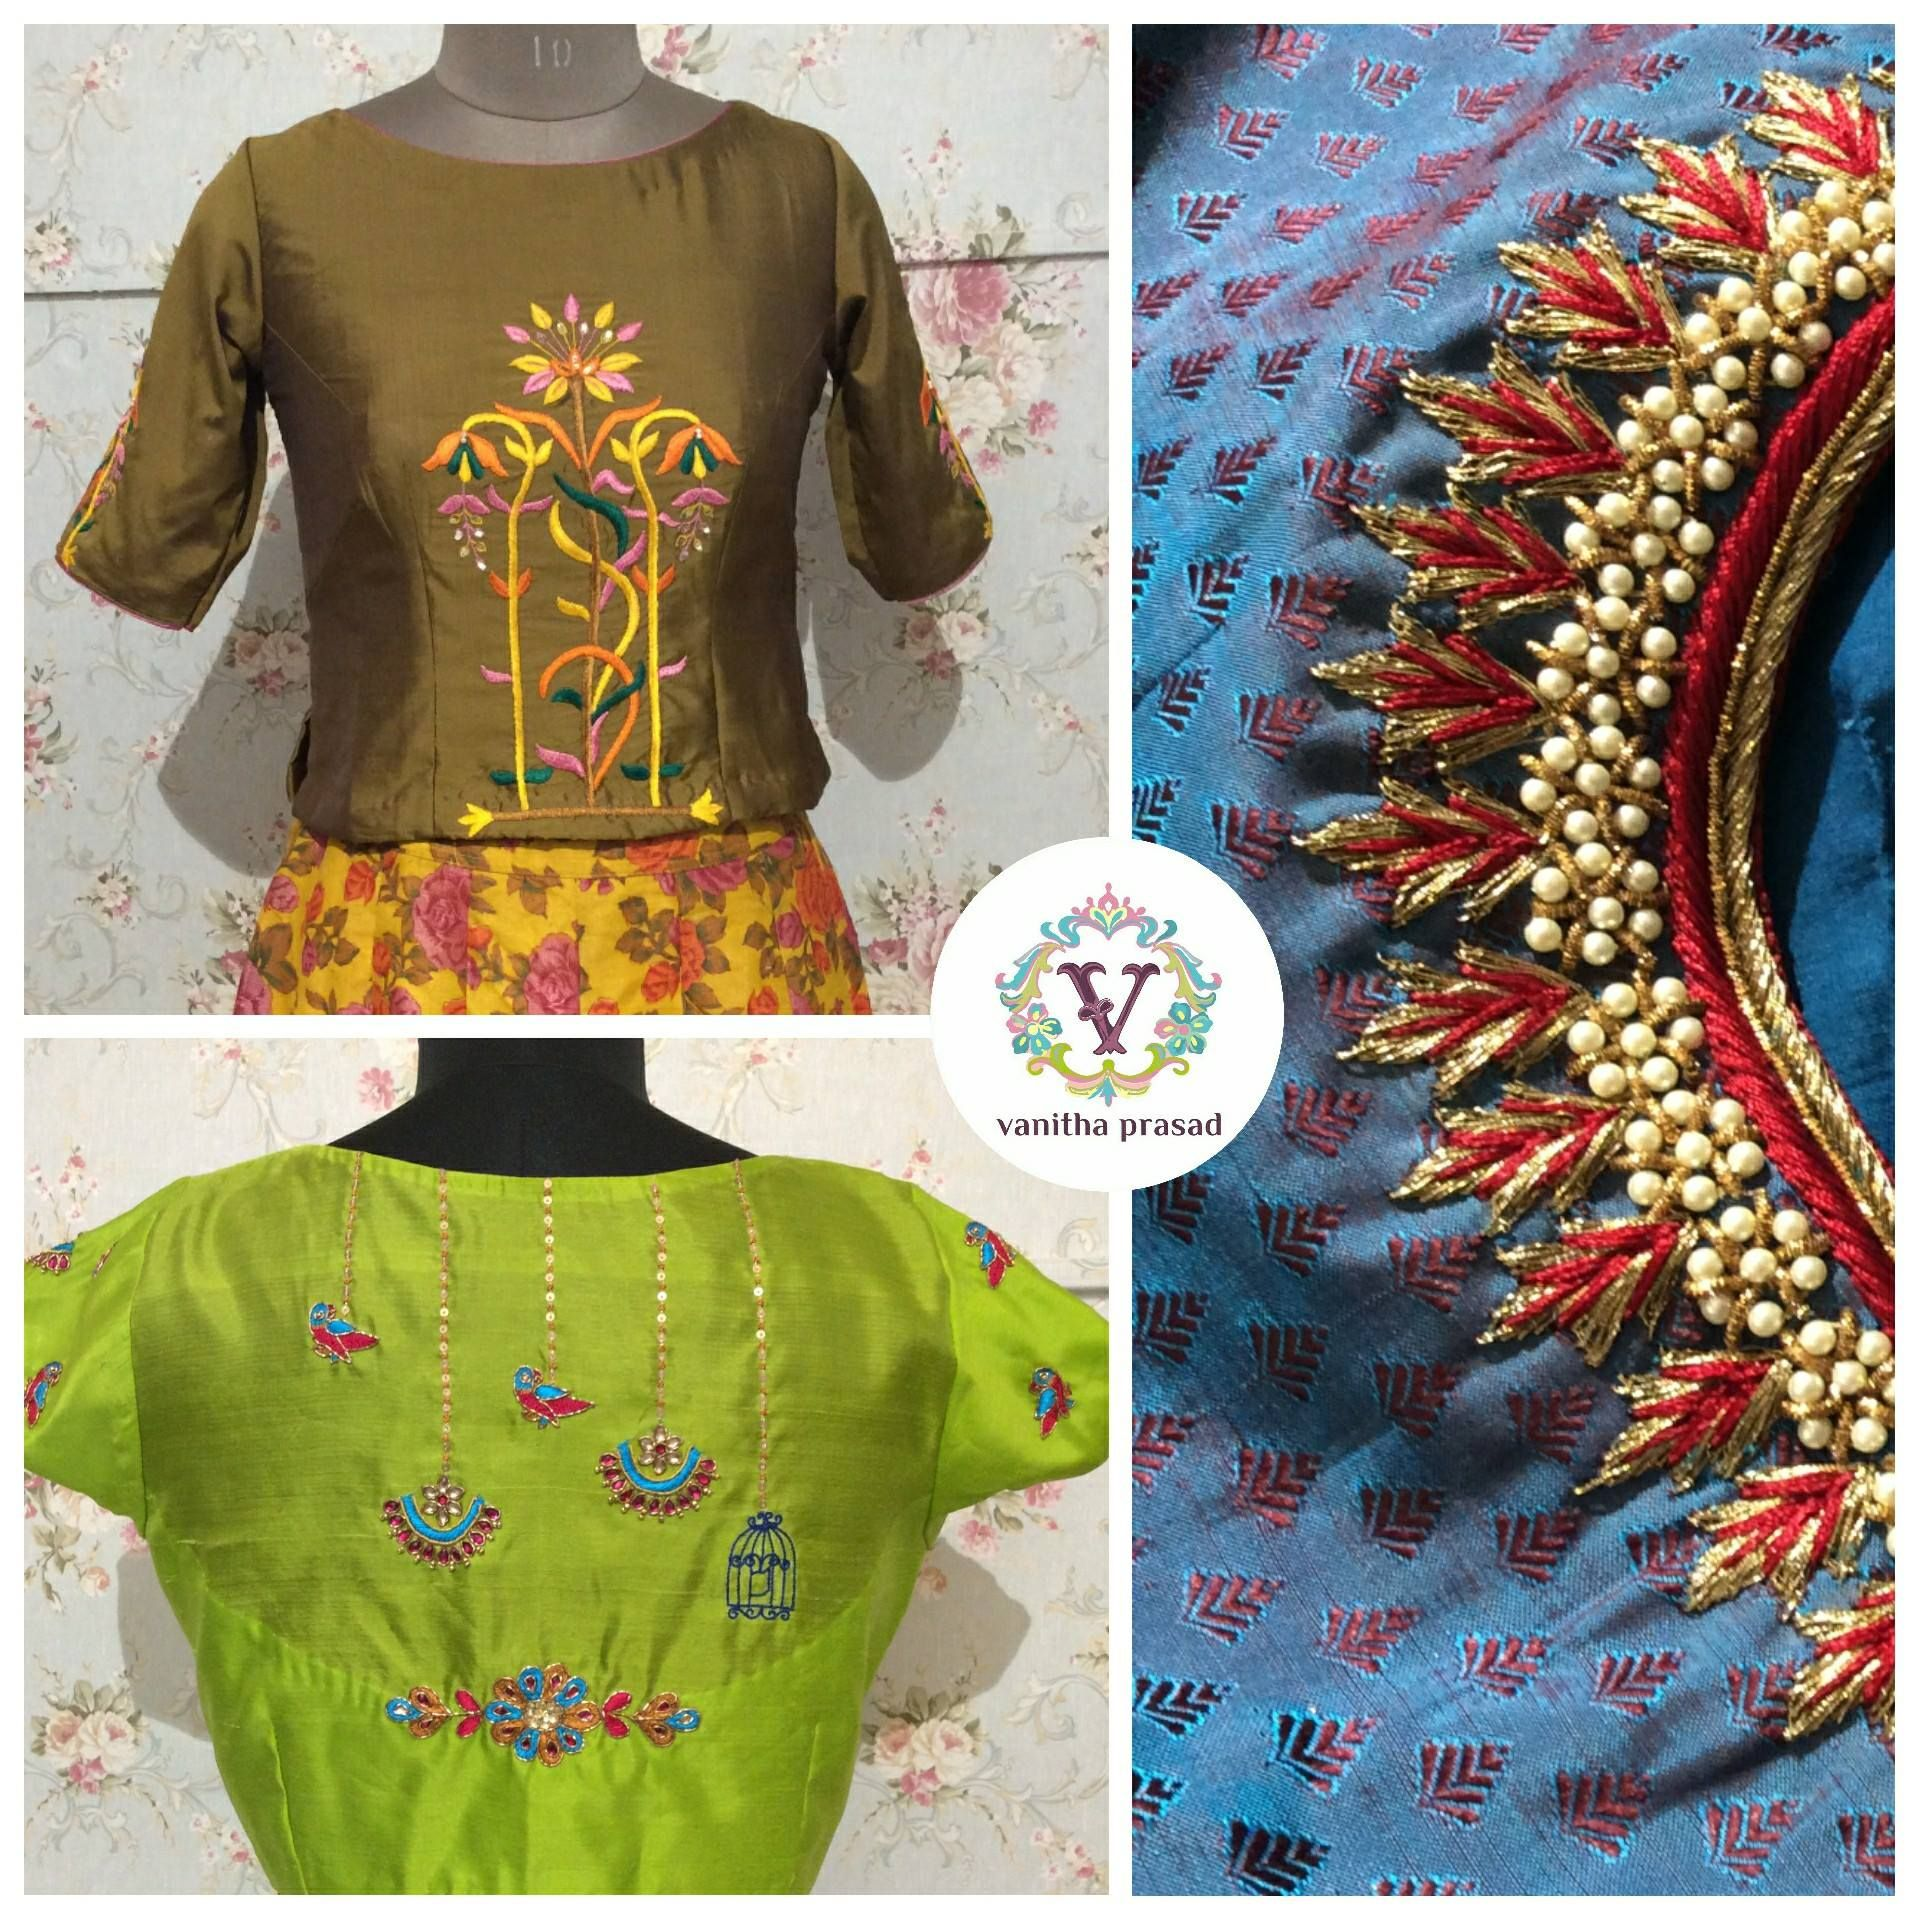 e59bc7185ea755 All about the details. Designer blouse with bird and cage design. 24 ...